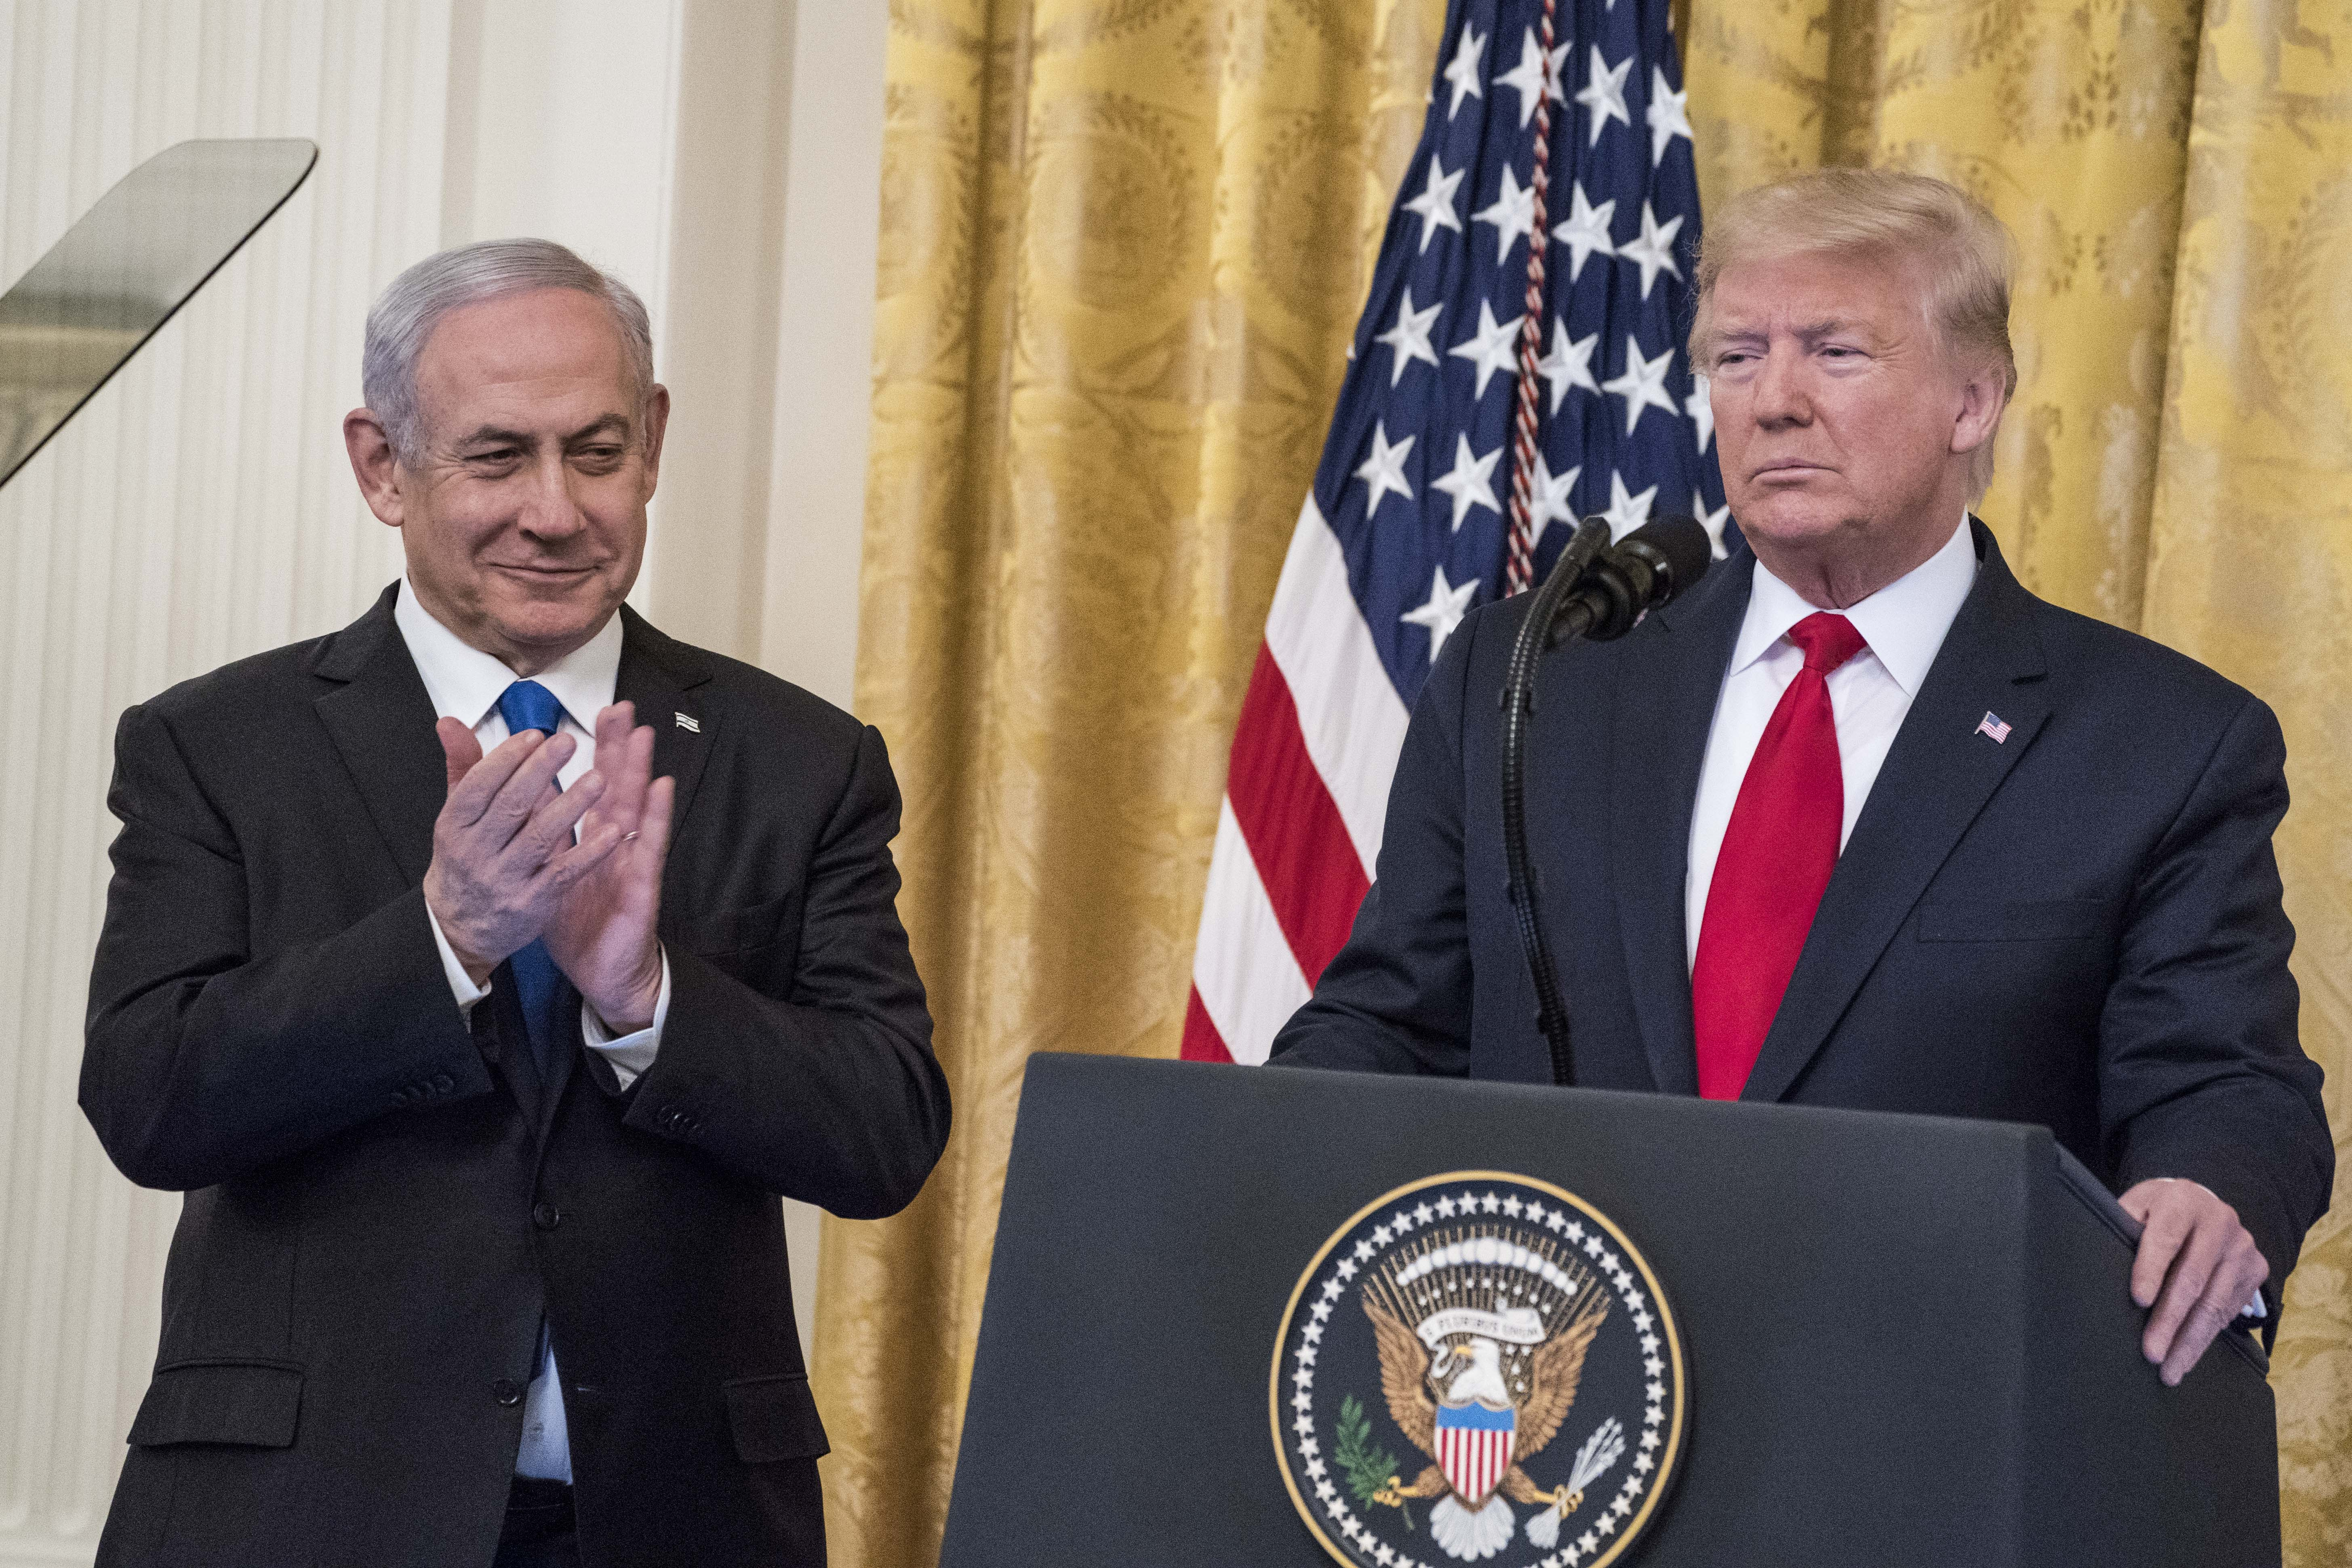 President Trump Meets With Israeli PM Netanyahu At The White House